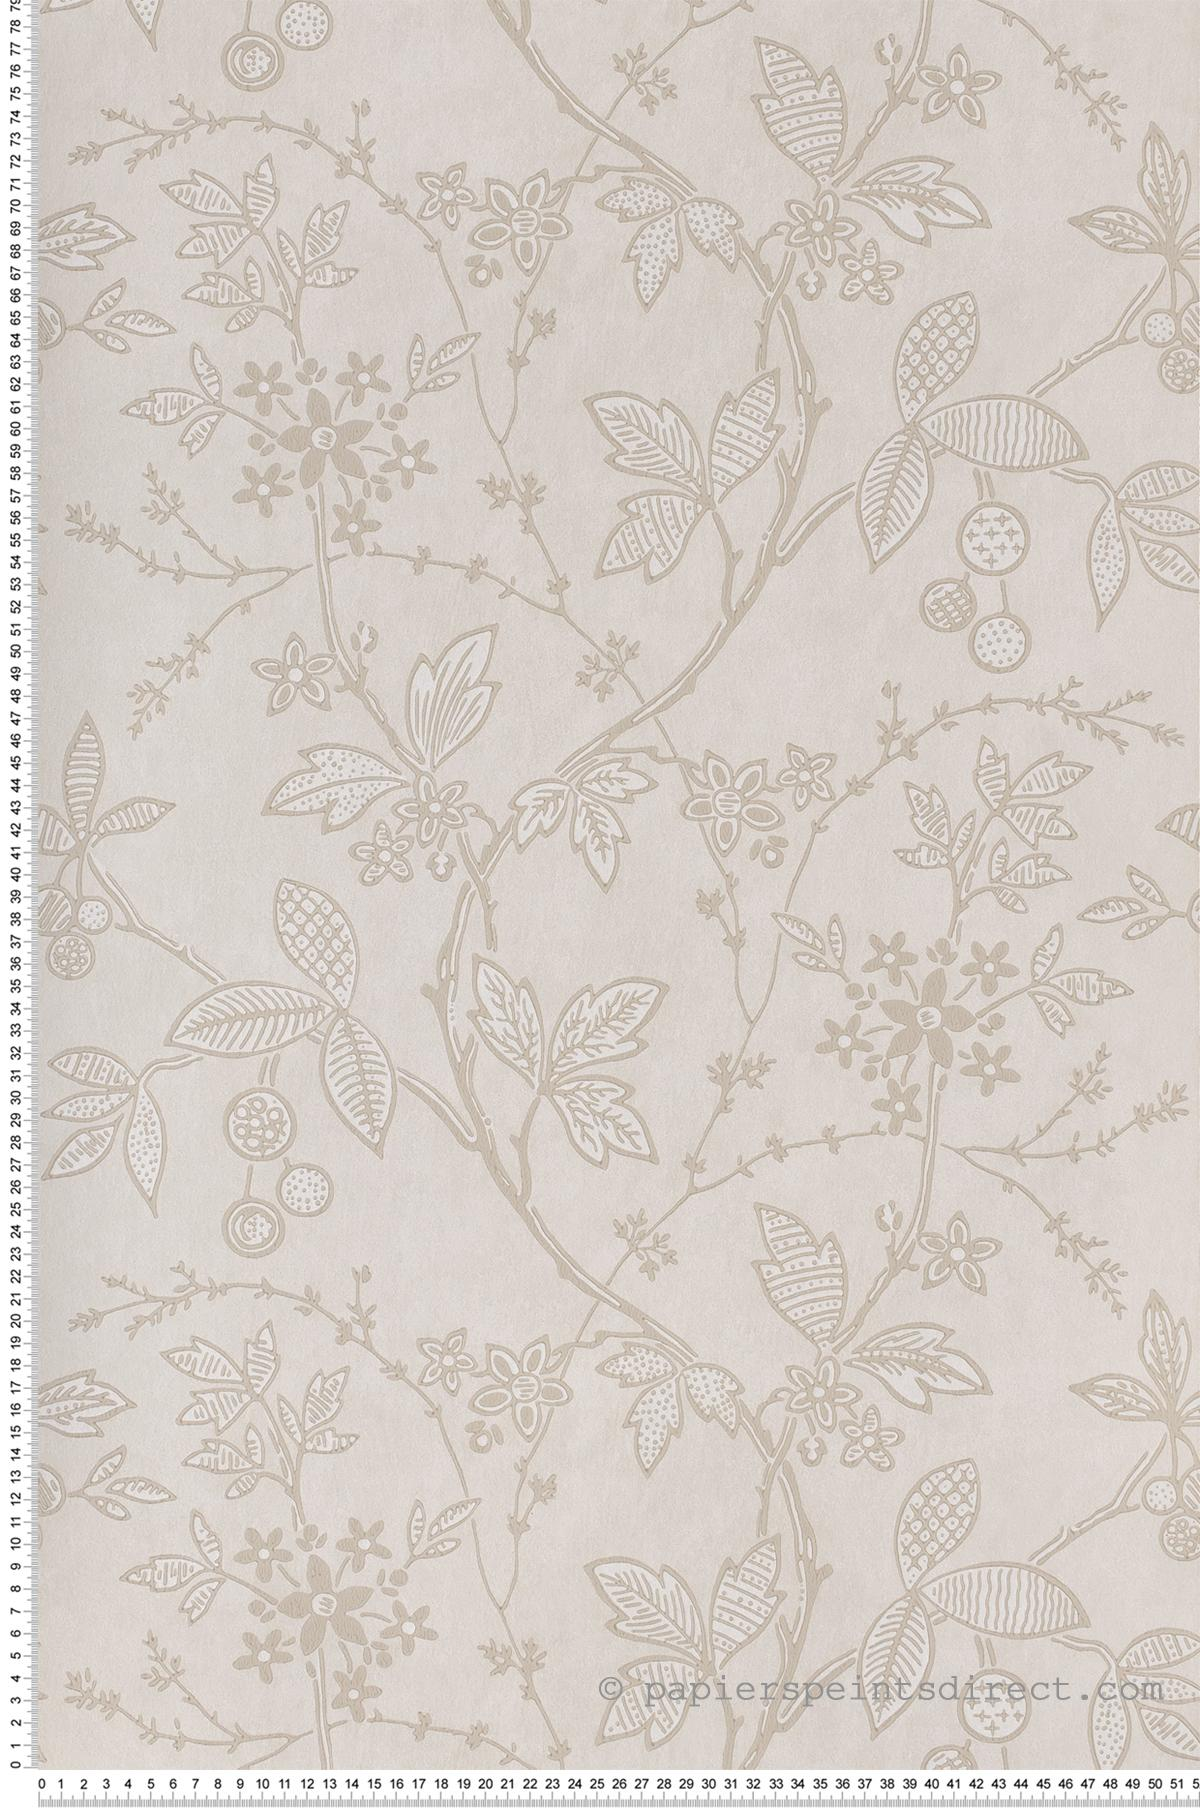 Wrest Trail Lime Plaster - Collection Archive Trails 2 de Little Greene